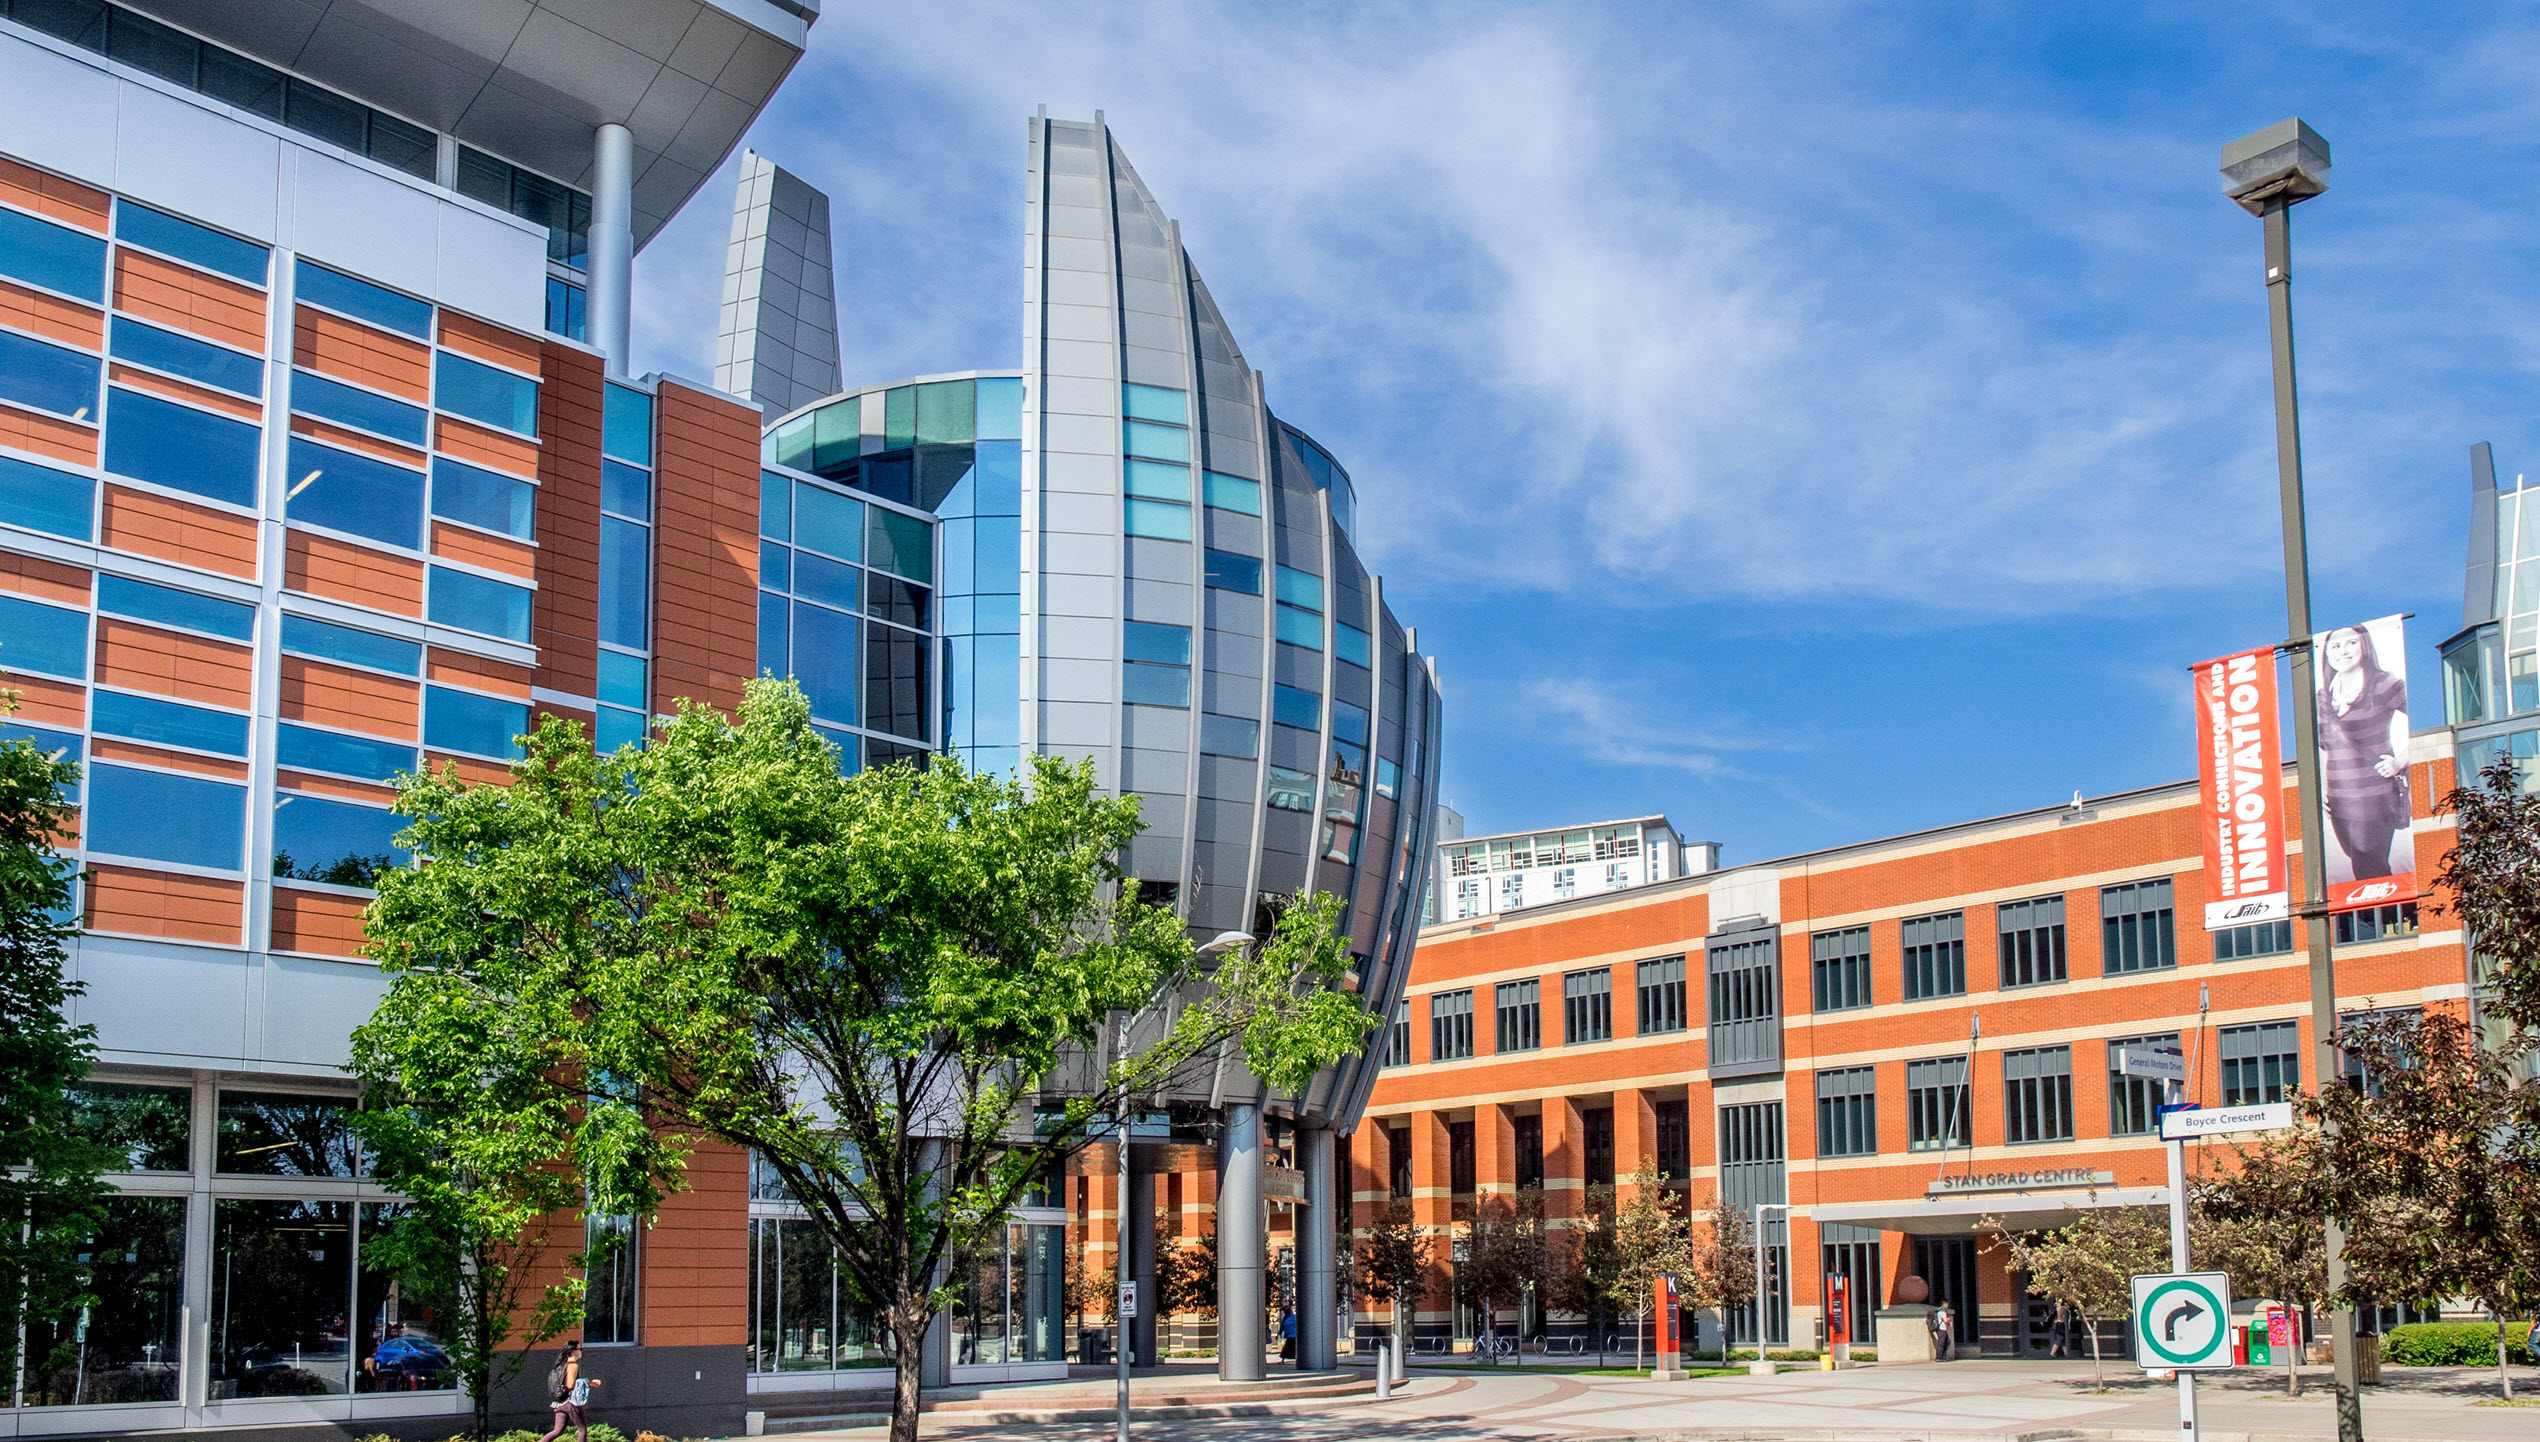 SAIT - Southern Alberta Institute of Technology Campus